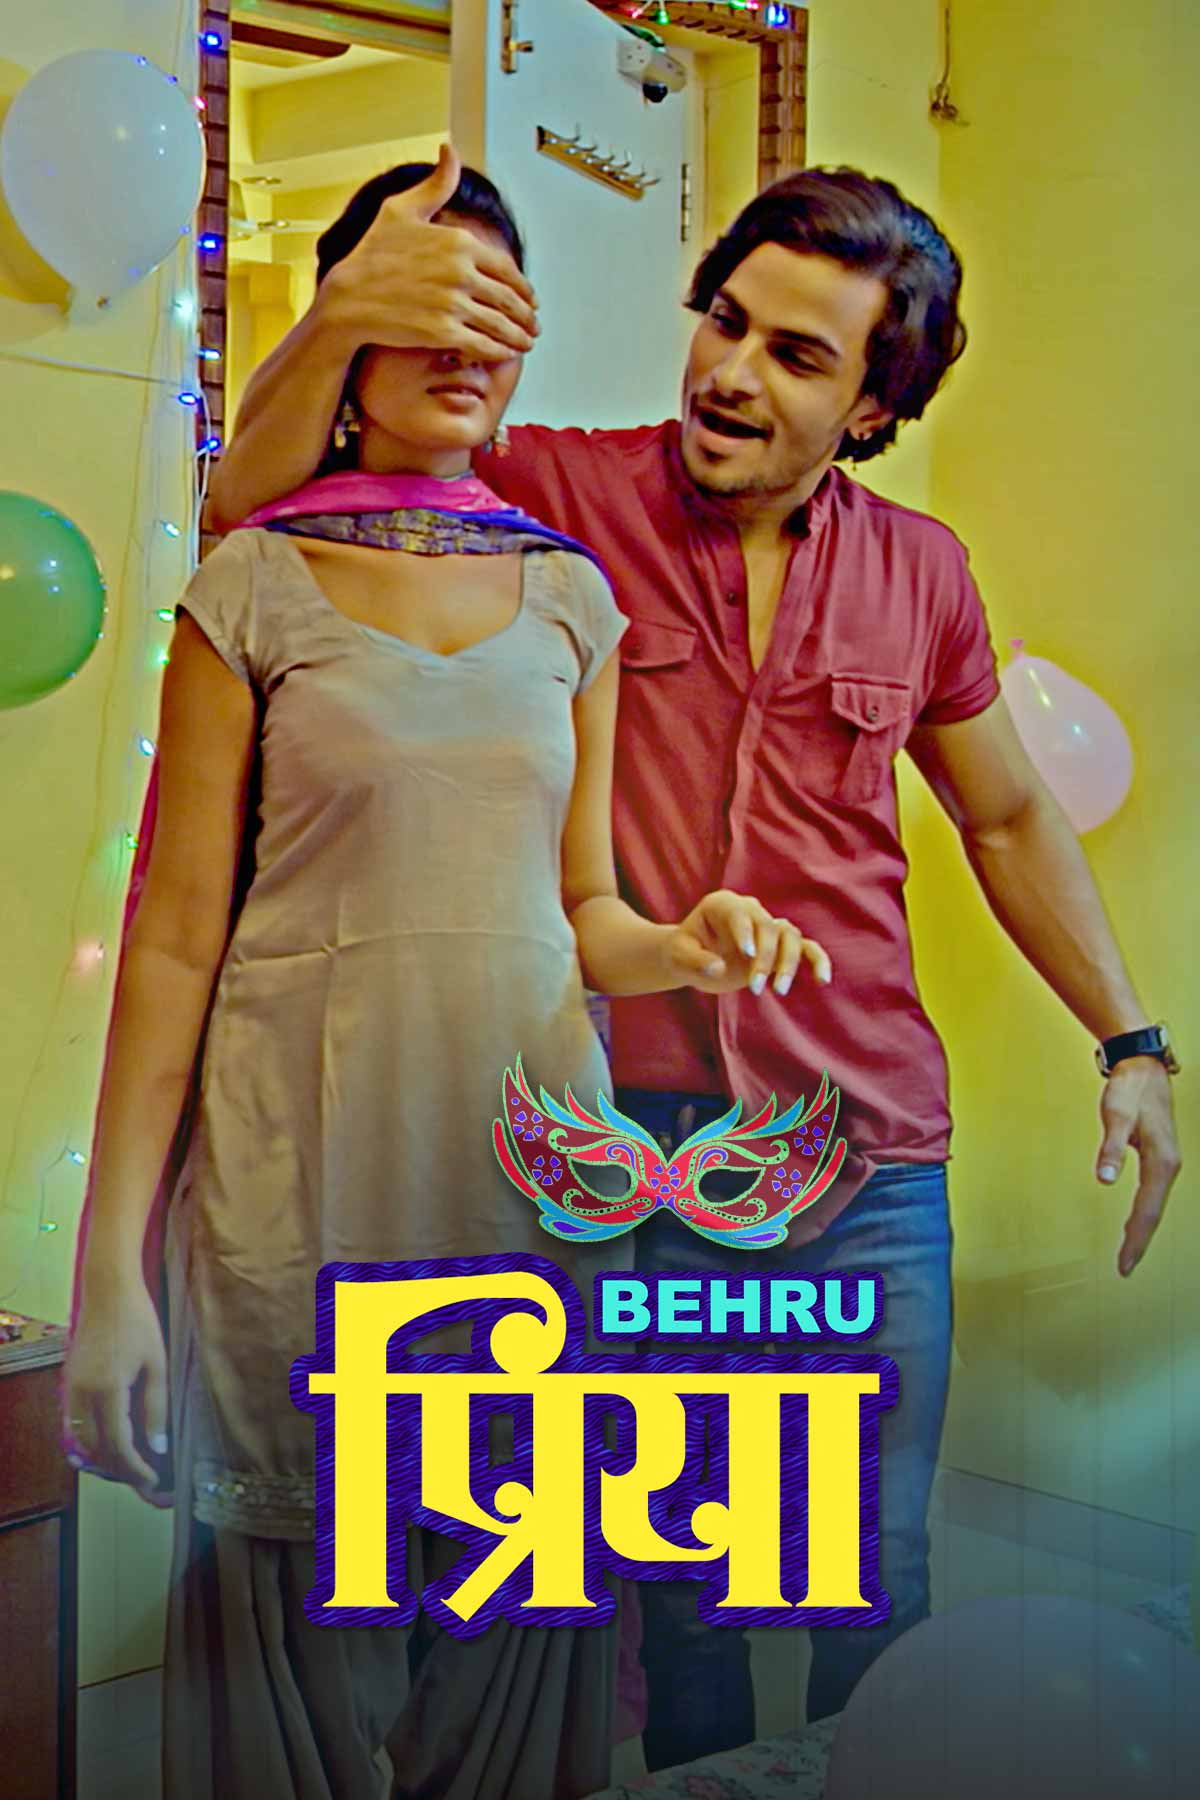 Behrupriya 2020 S01 Hindi Kooku App Complete Web Series 720p HDRip 400MB Download